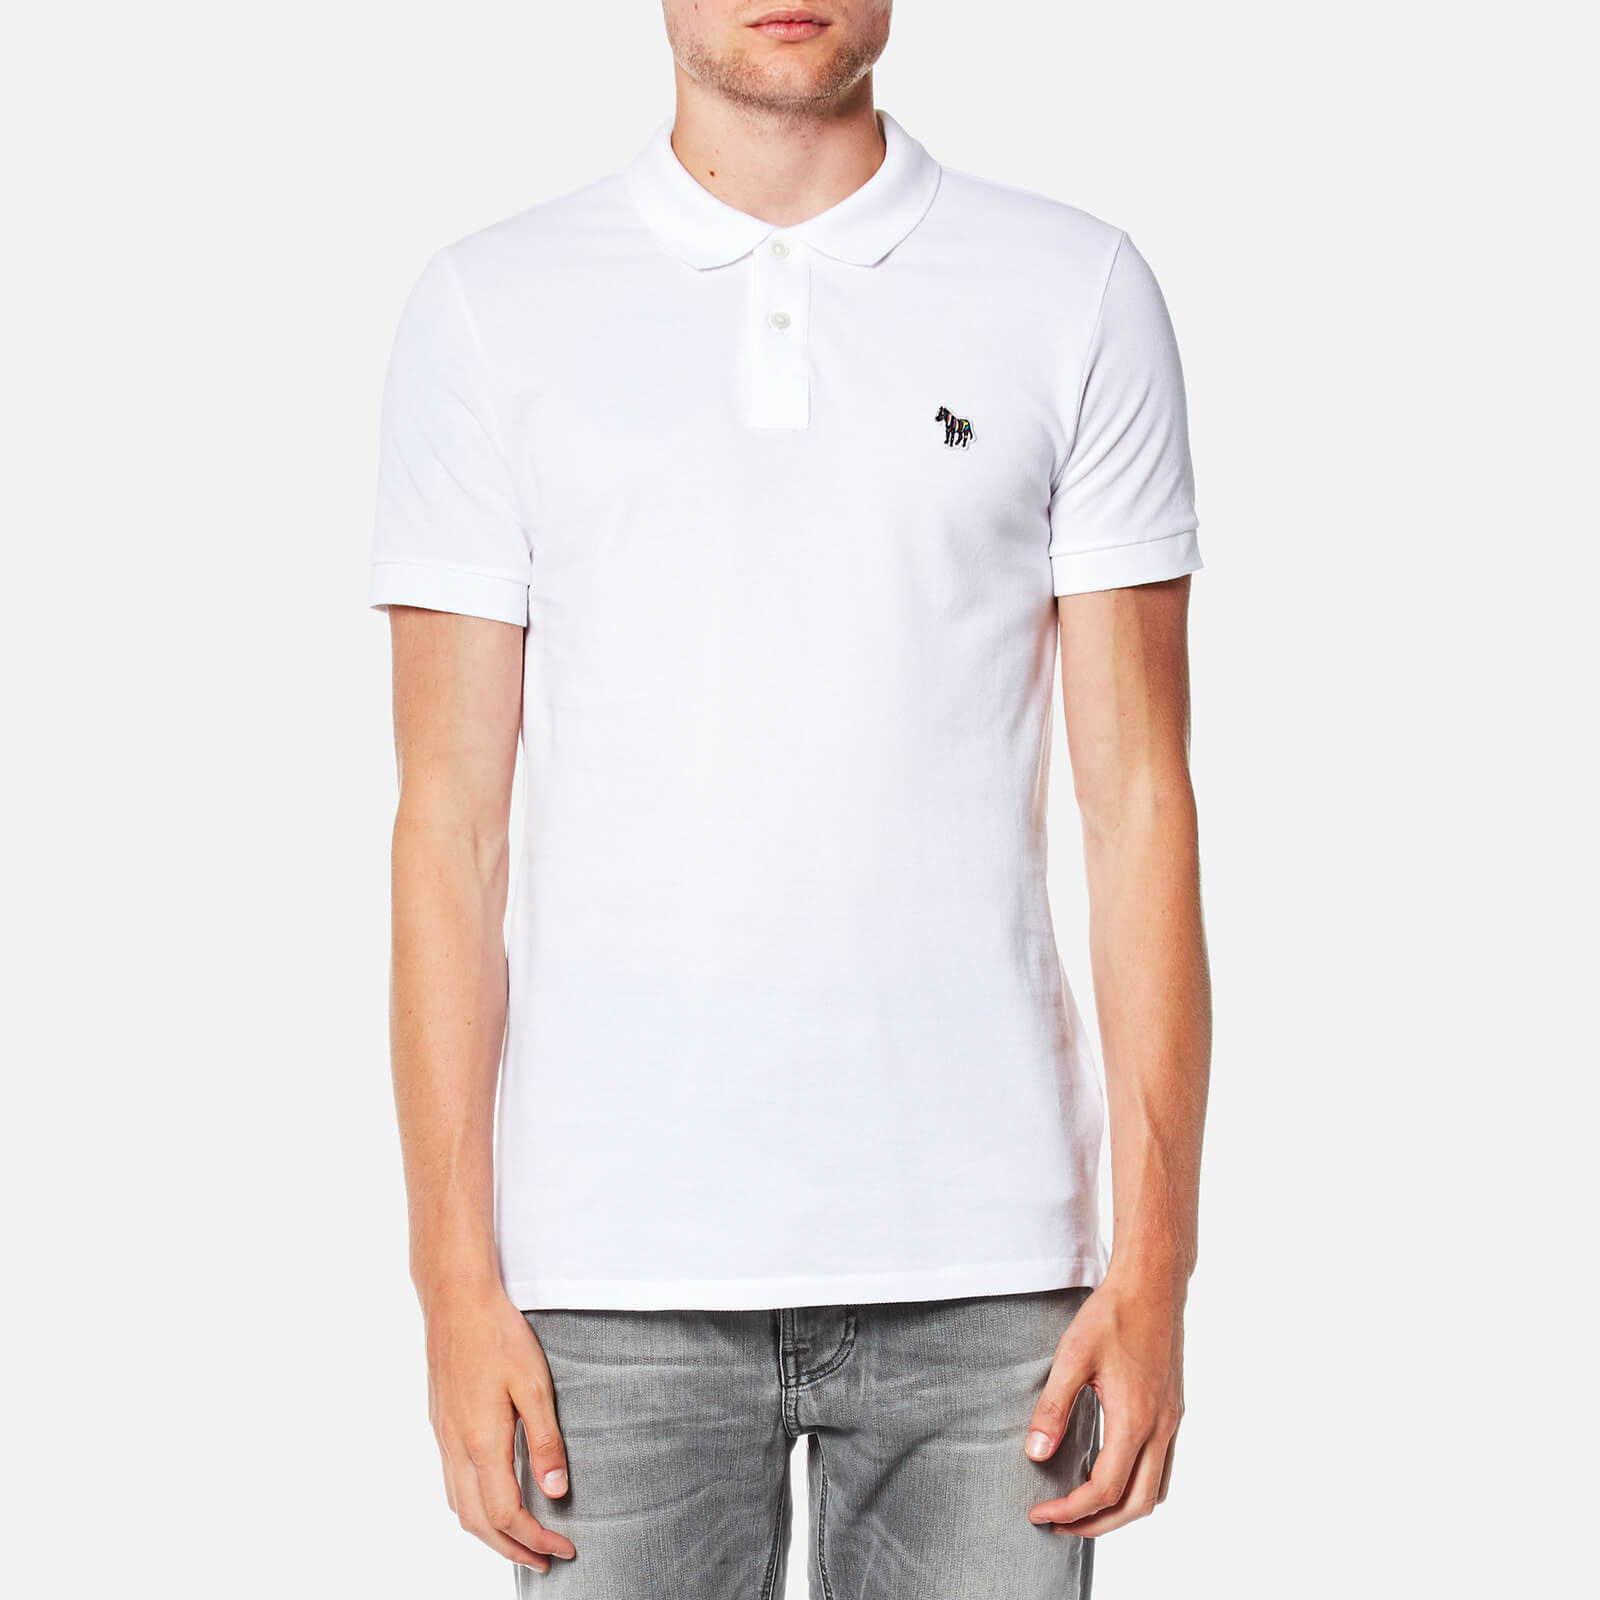 69eae96cd266 PS by Paul Smith Men's Slim Fit Zebra Logo Polo Shirt - White - Free UK  Delivery over £50